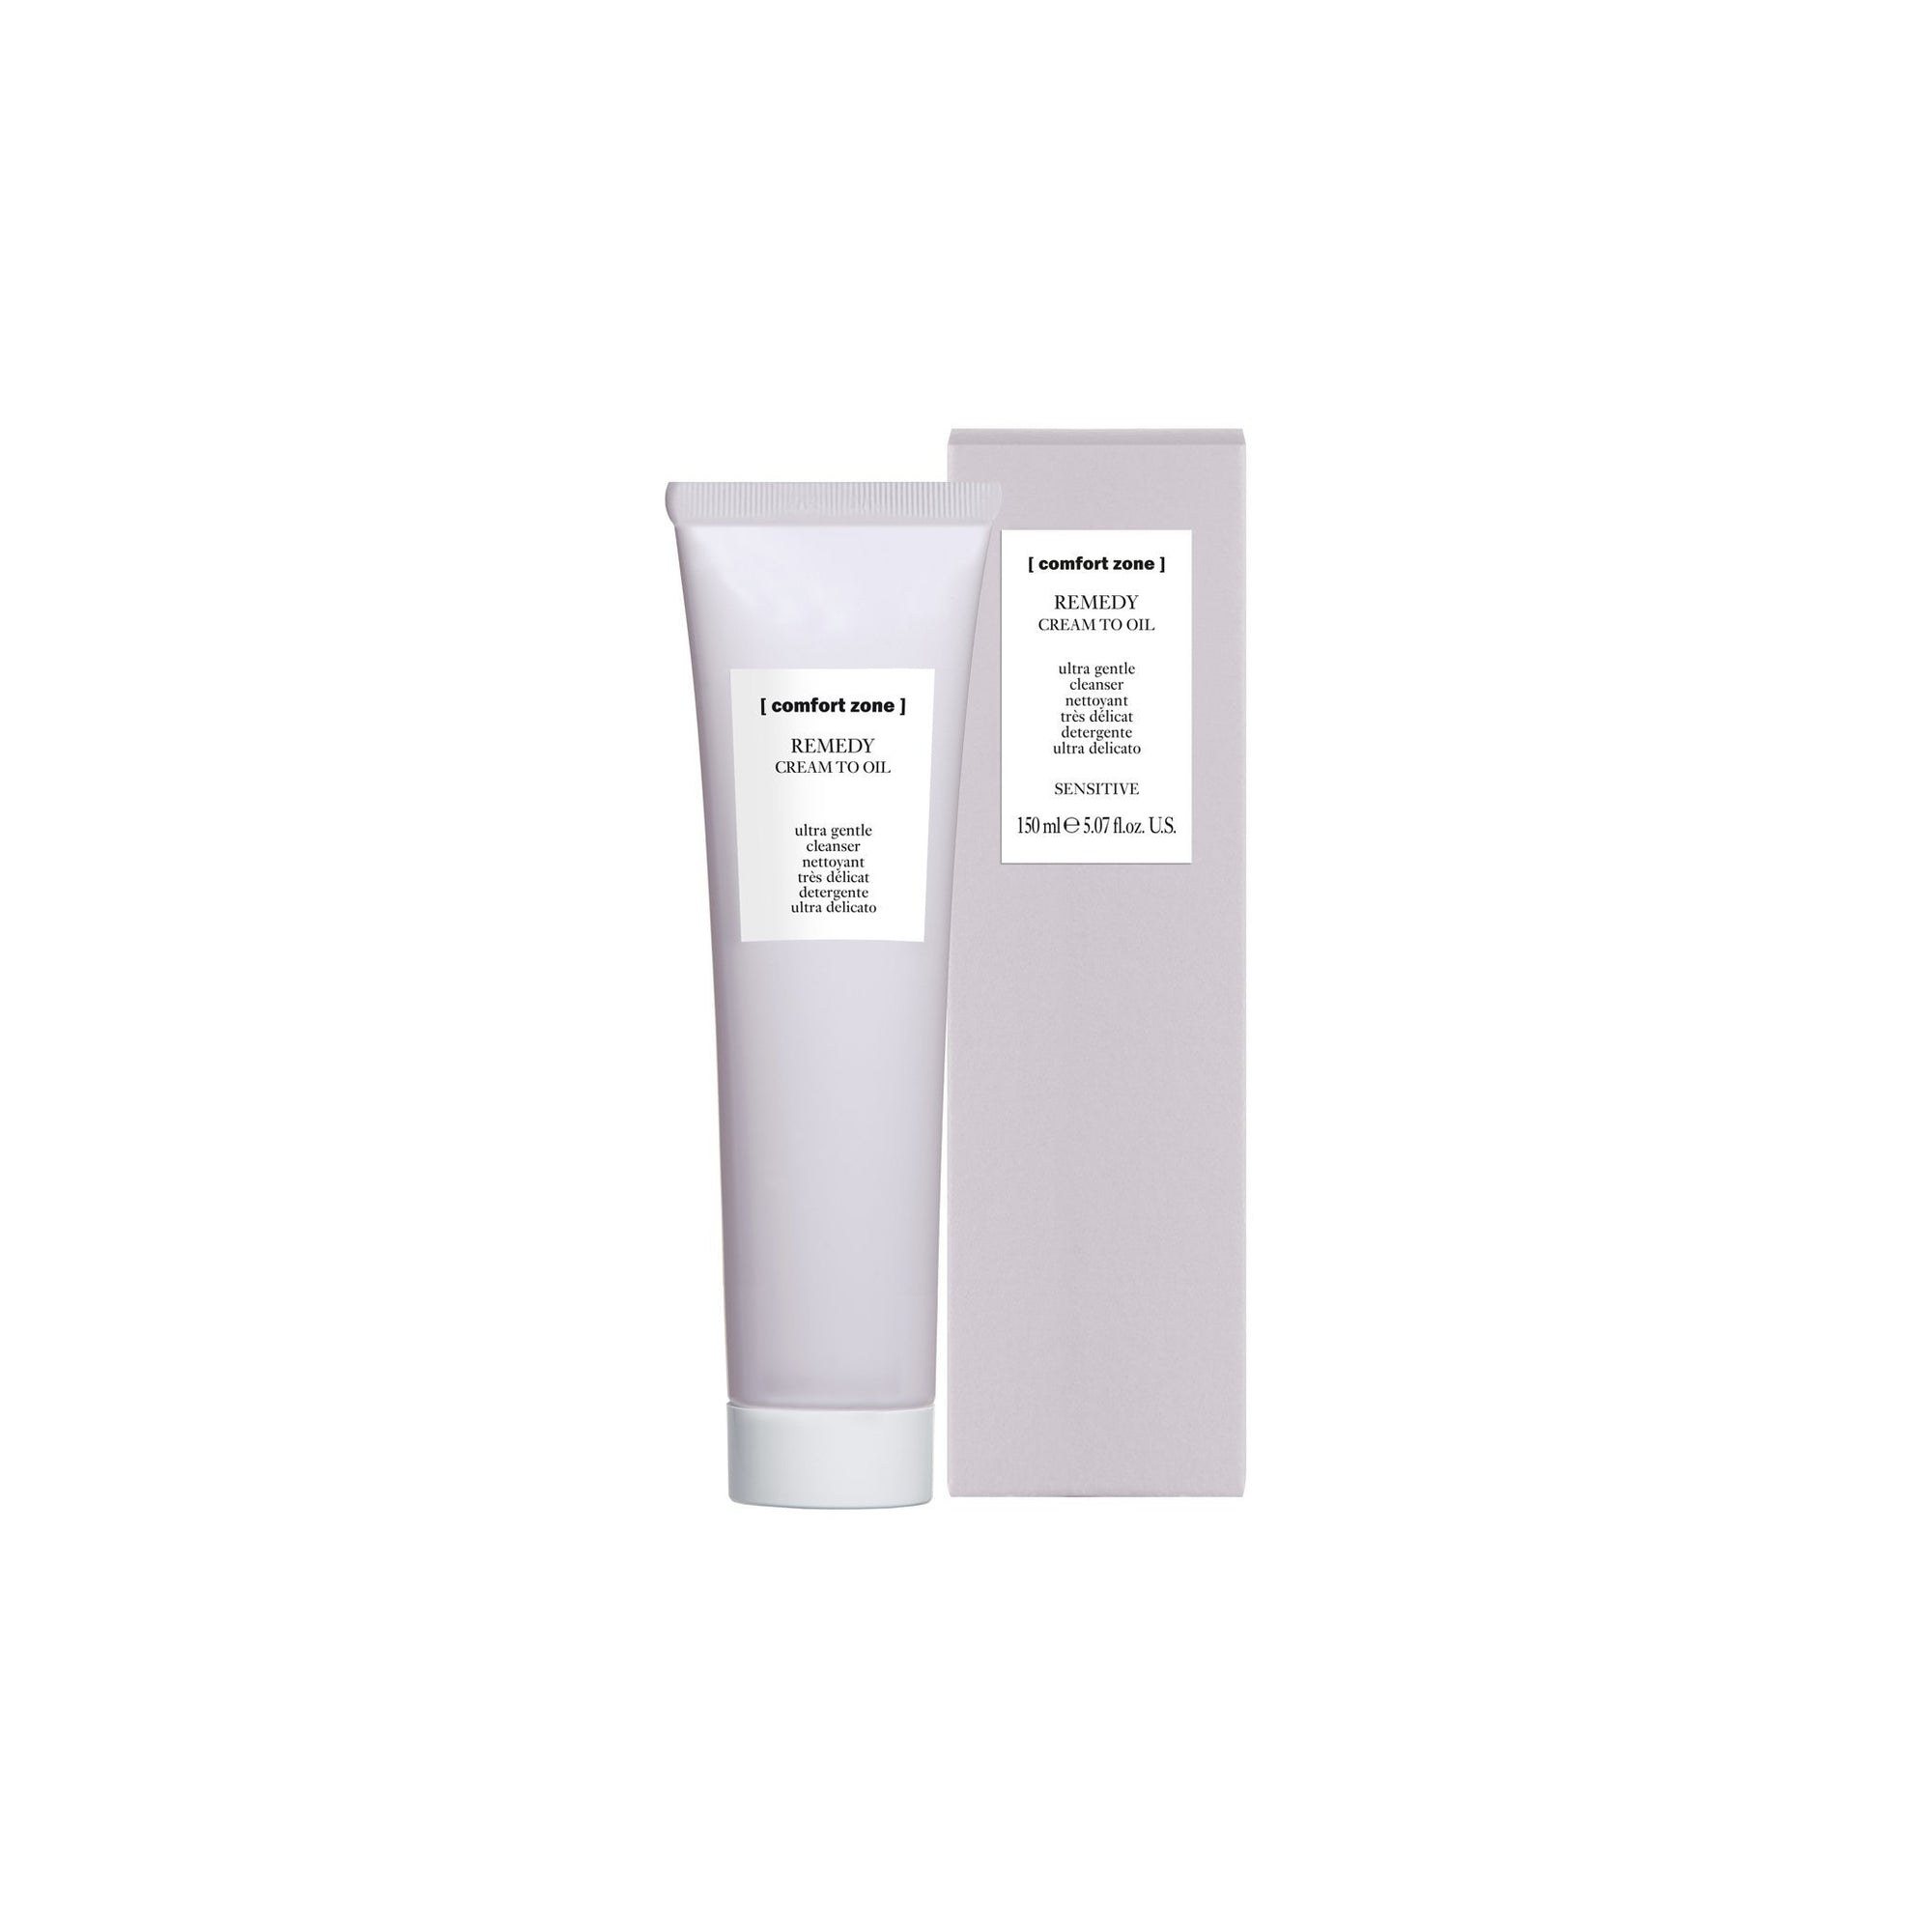 Comfort Zone Remedy Cream to Oil 150ml